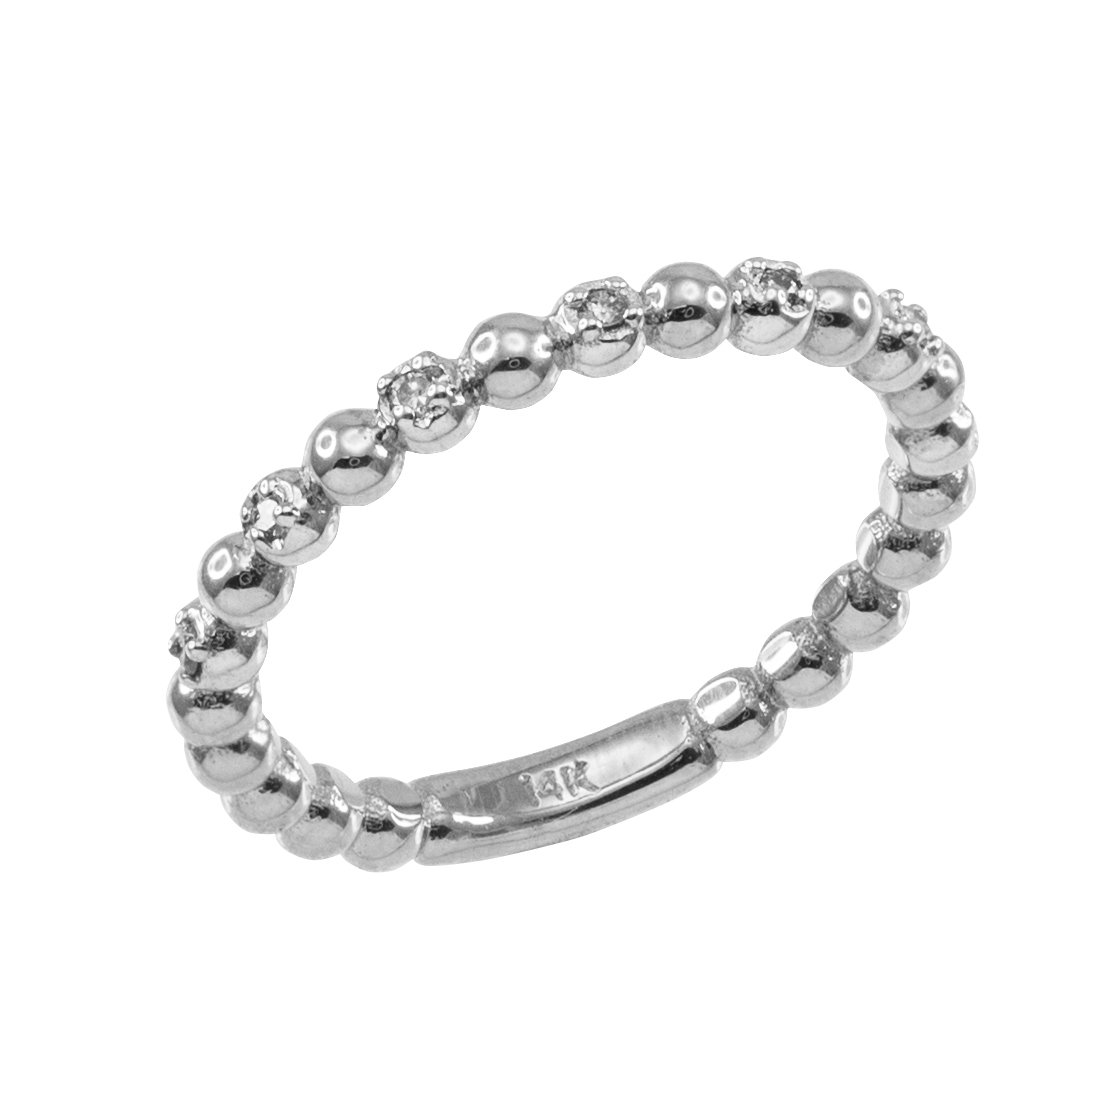 Fine 925 Sterling Silver Beaded Stackable Ring with White CZ Stones (Size 10)